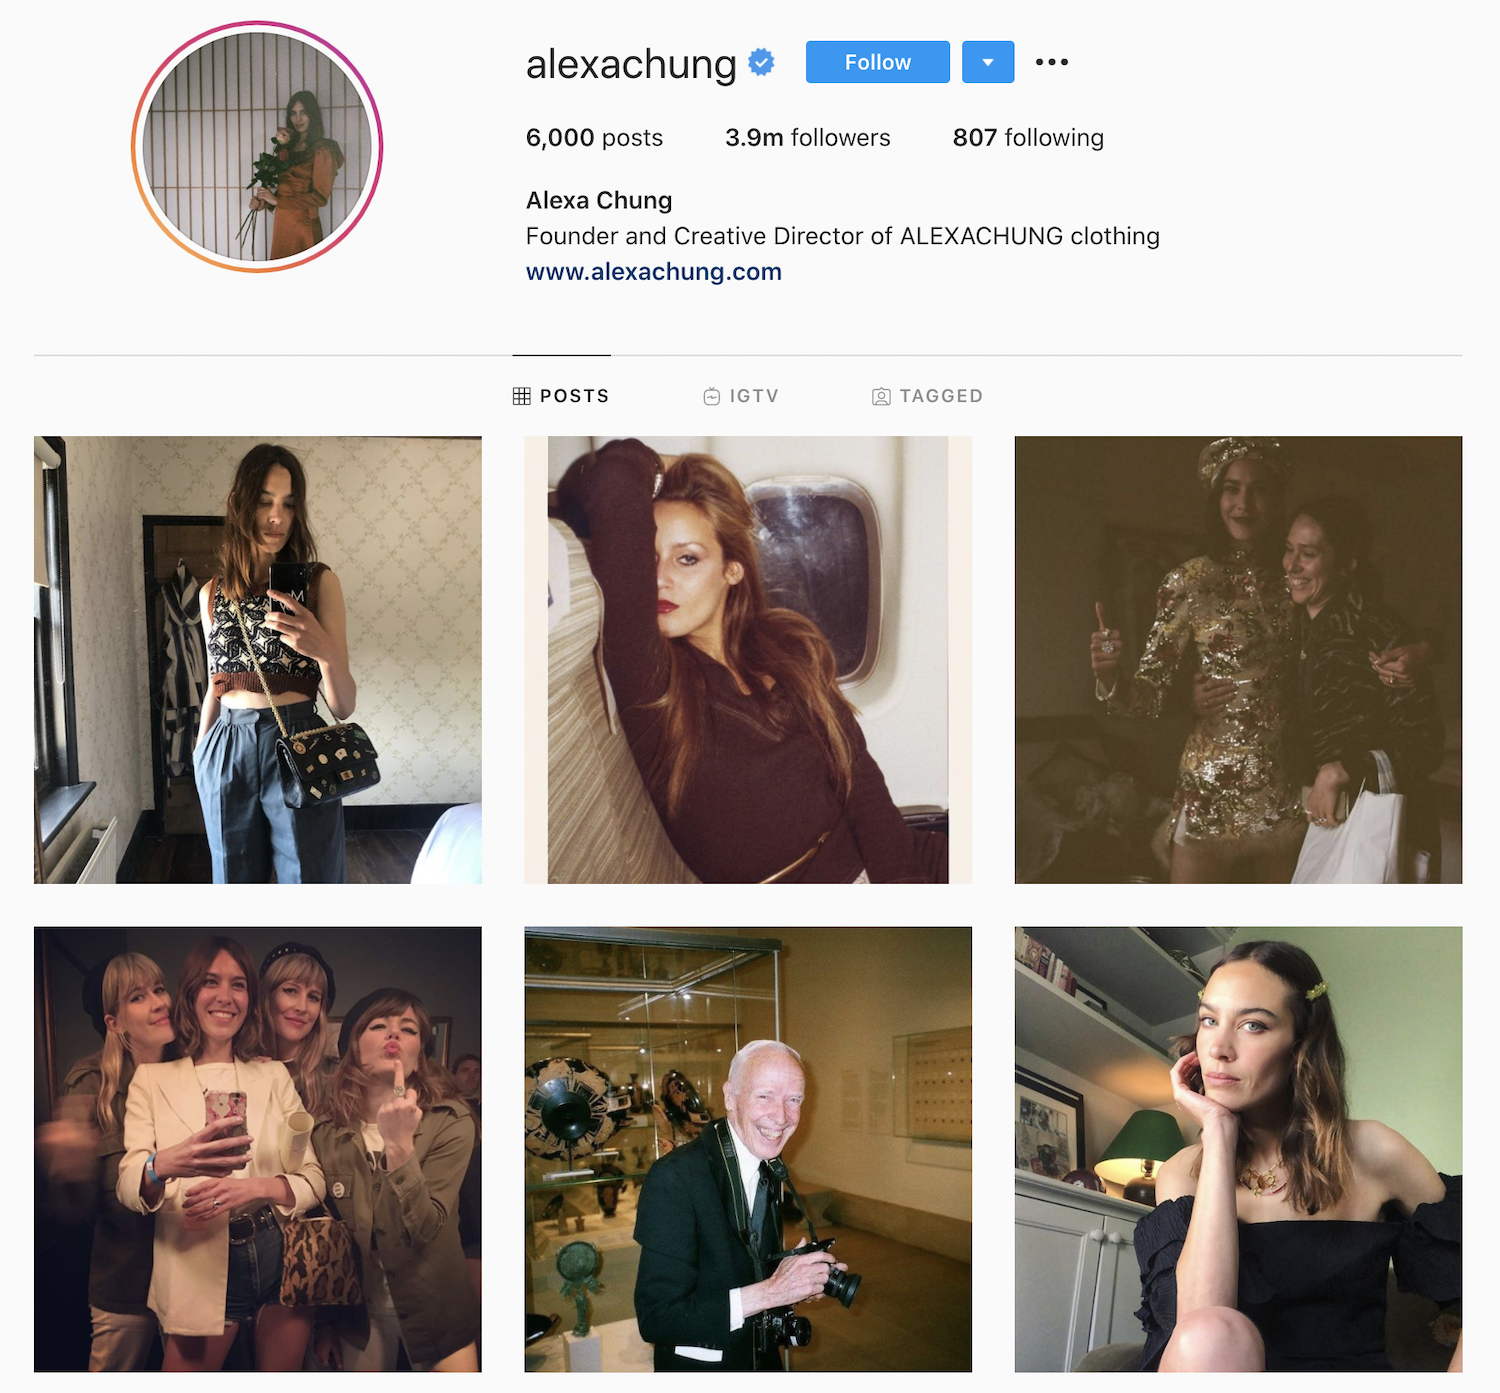 Alexa Chung is followed by many fashion brands and celebrities on Instagram.